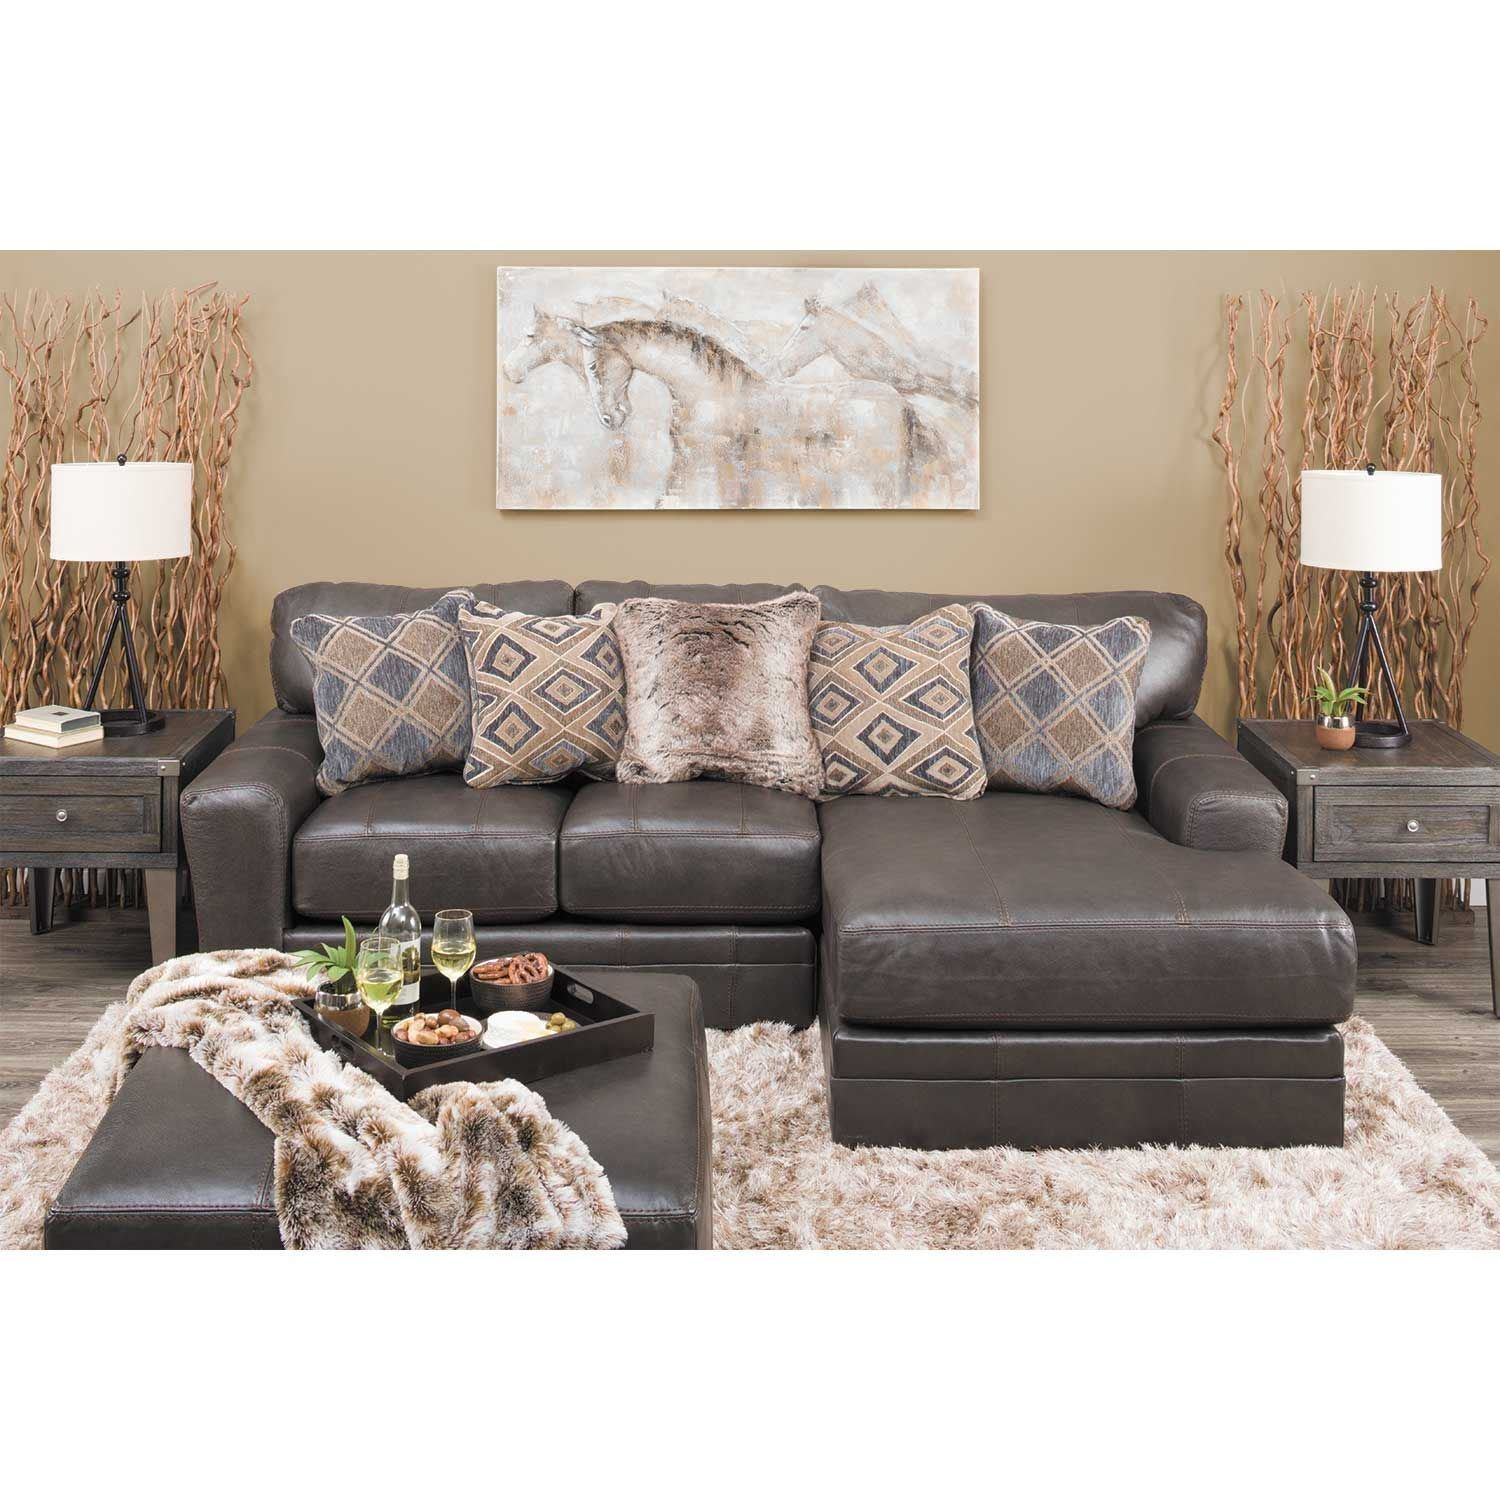 Denali 2 Piece Italian Leather Sectional With Laf Chaise 4378 75 42 Jackson Furniture